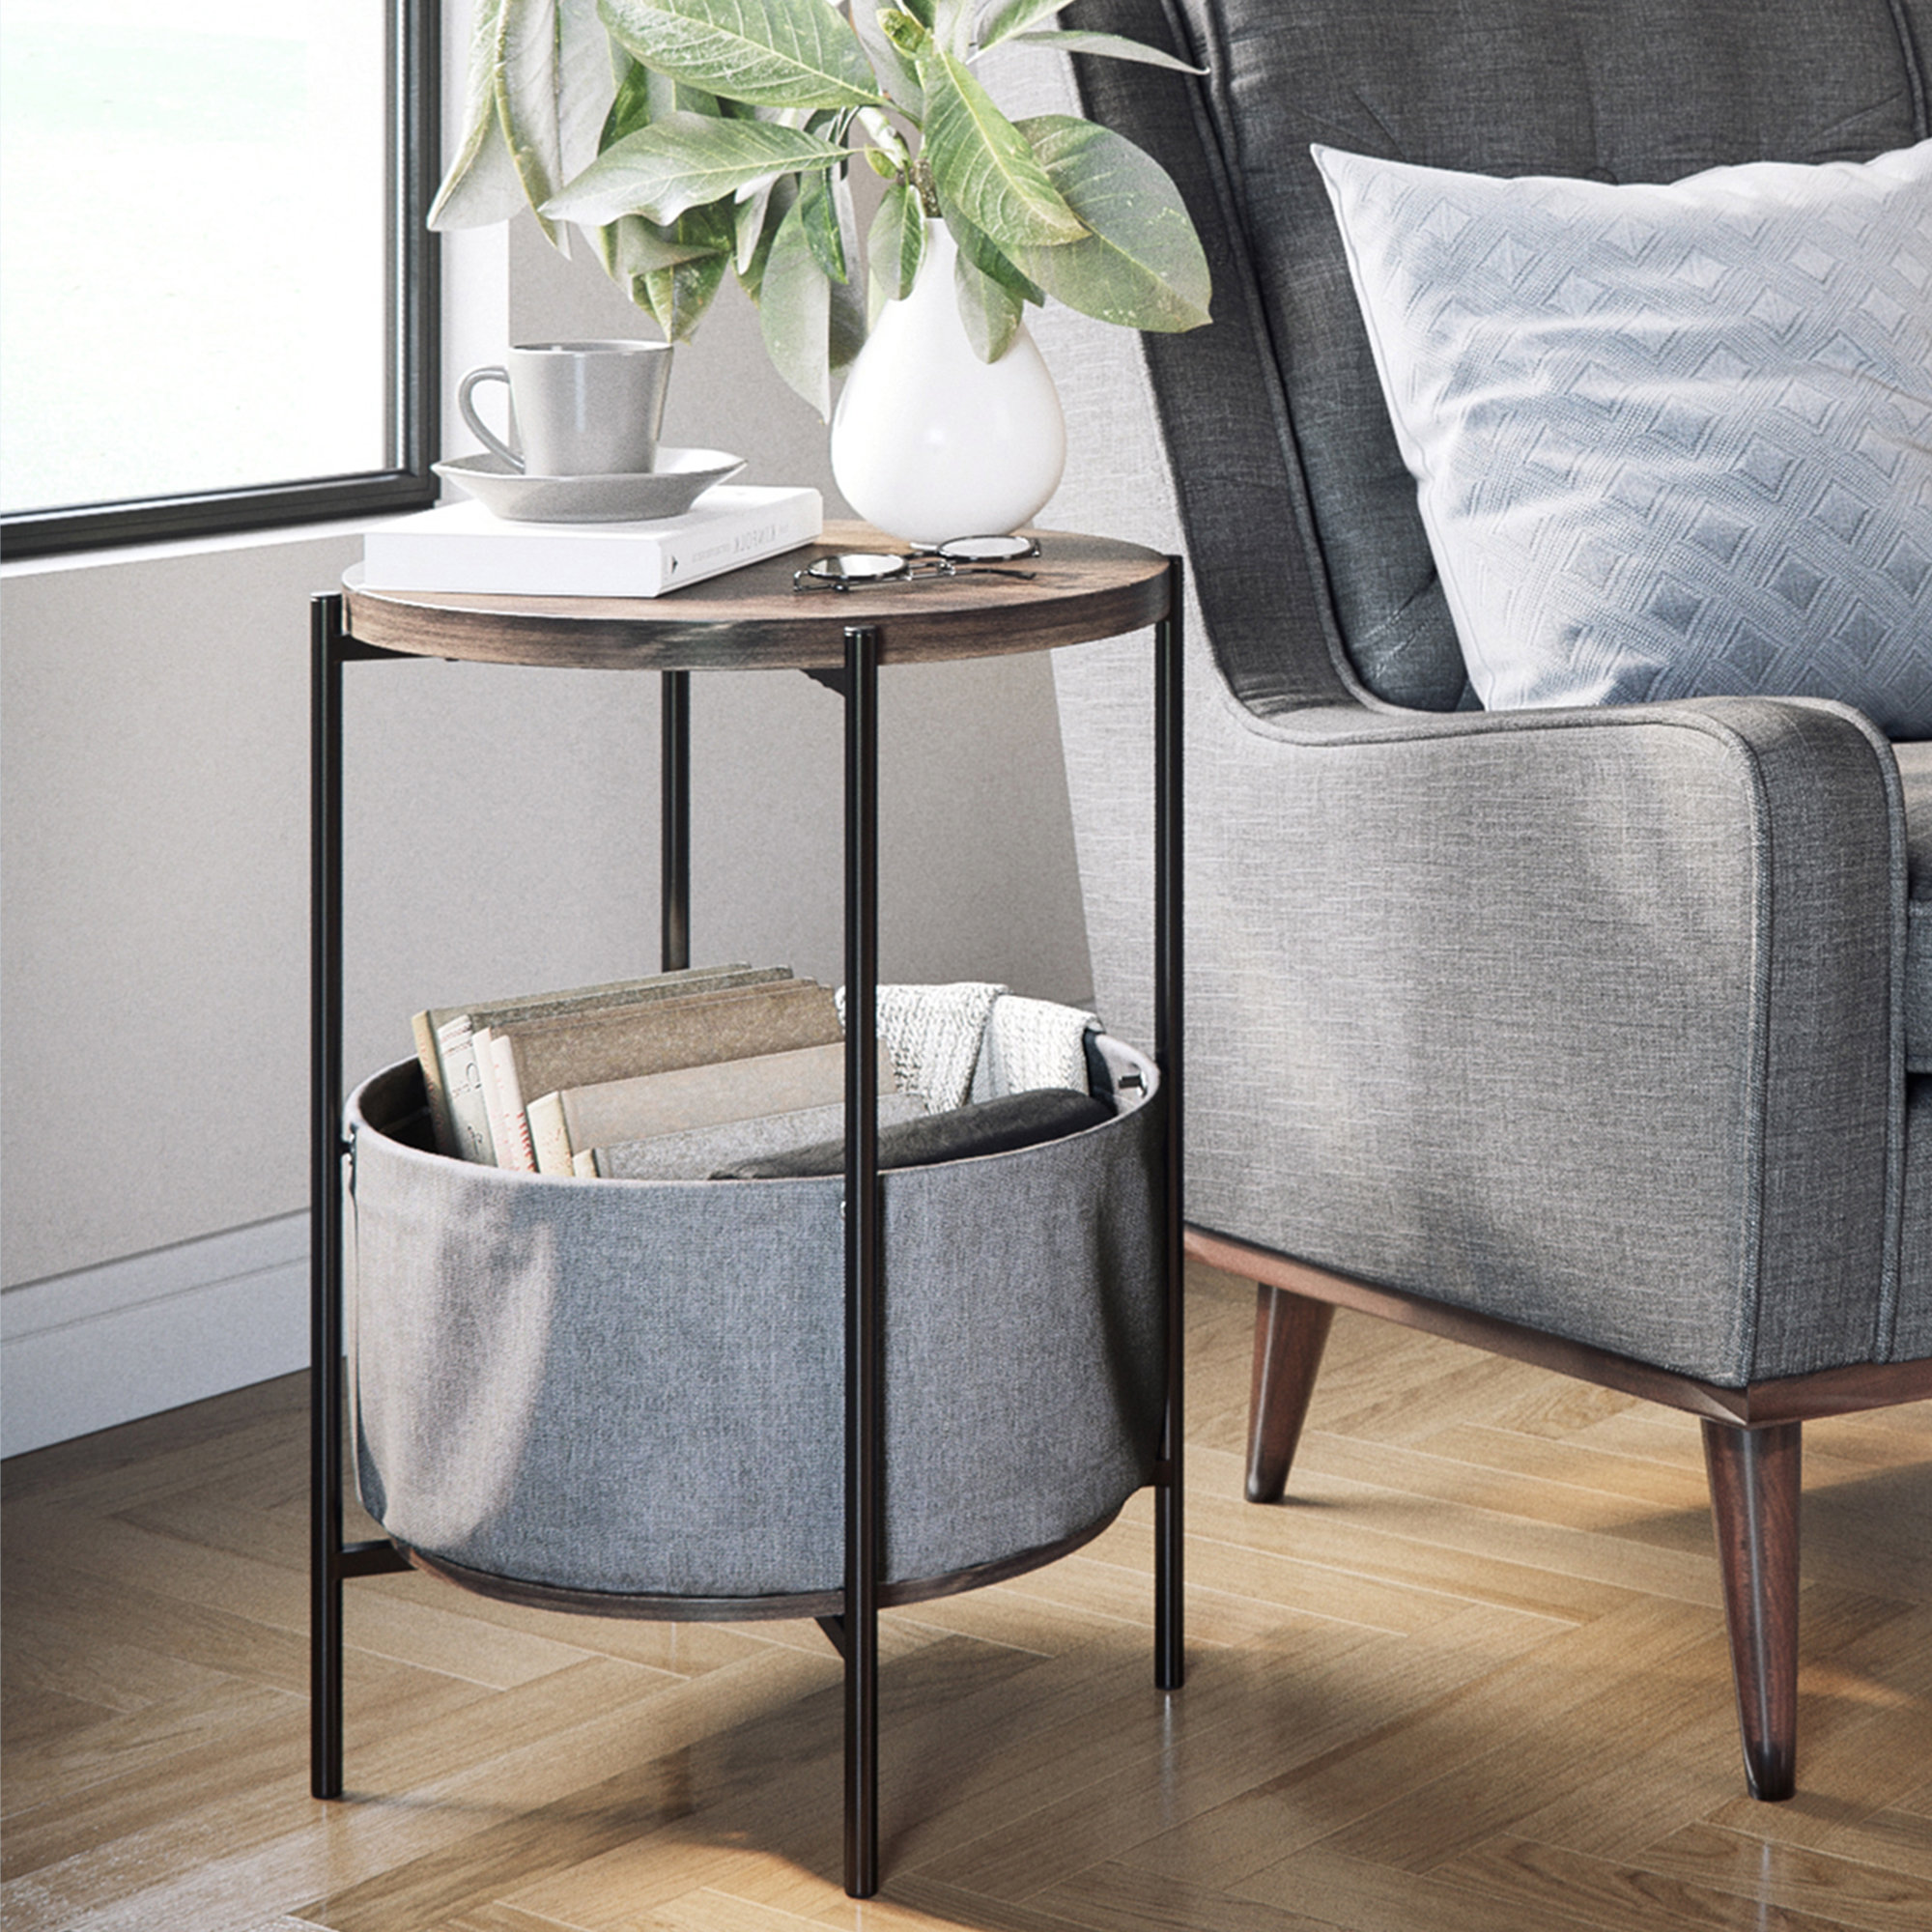 trent austin design bluxome end table with storage reviews room essentials stacking accent tiffany small folding patio large dining chairs globe lamp target coffee best home decor